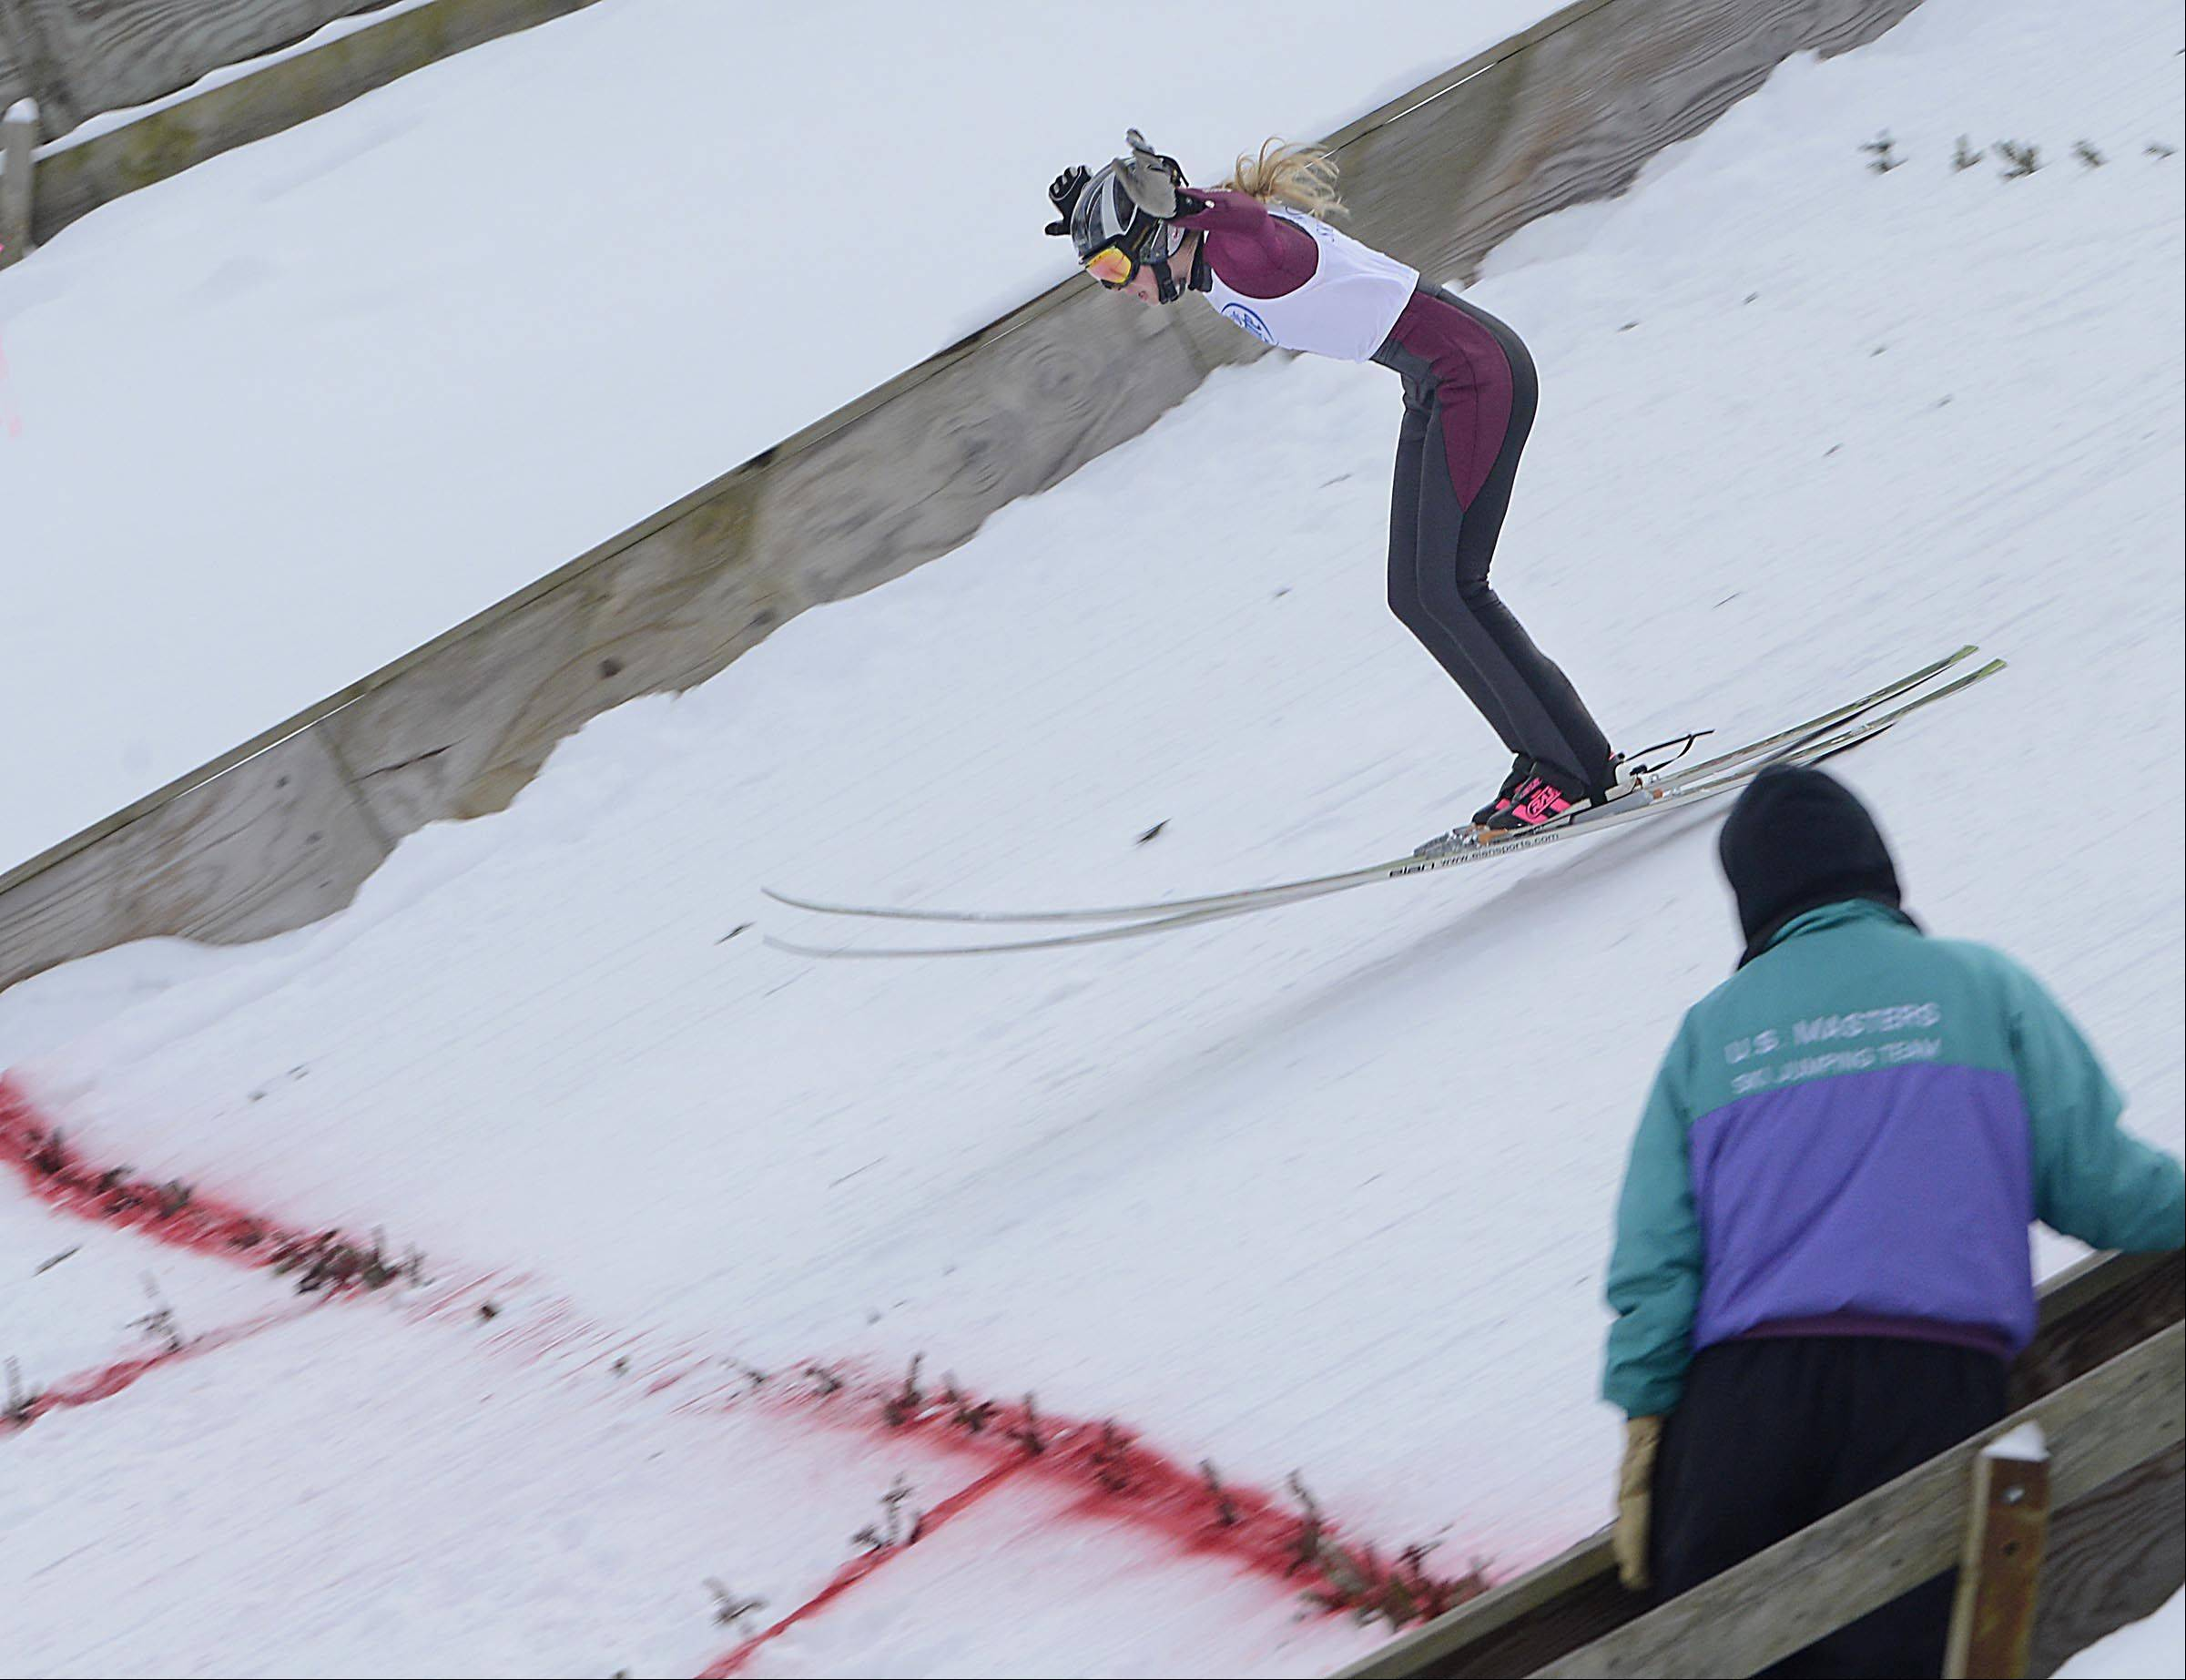 Tara Geaghty-Moats, 20, of New York, touches down on the 70-meter hill Sunday at the Norge International Ski Jumping Tournament in Fox River Grove. More than 60 skiers competed in Sunday's event.